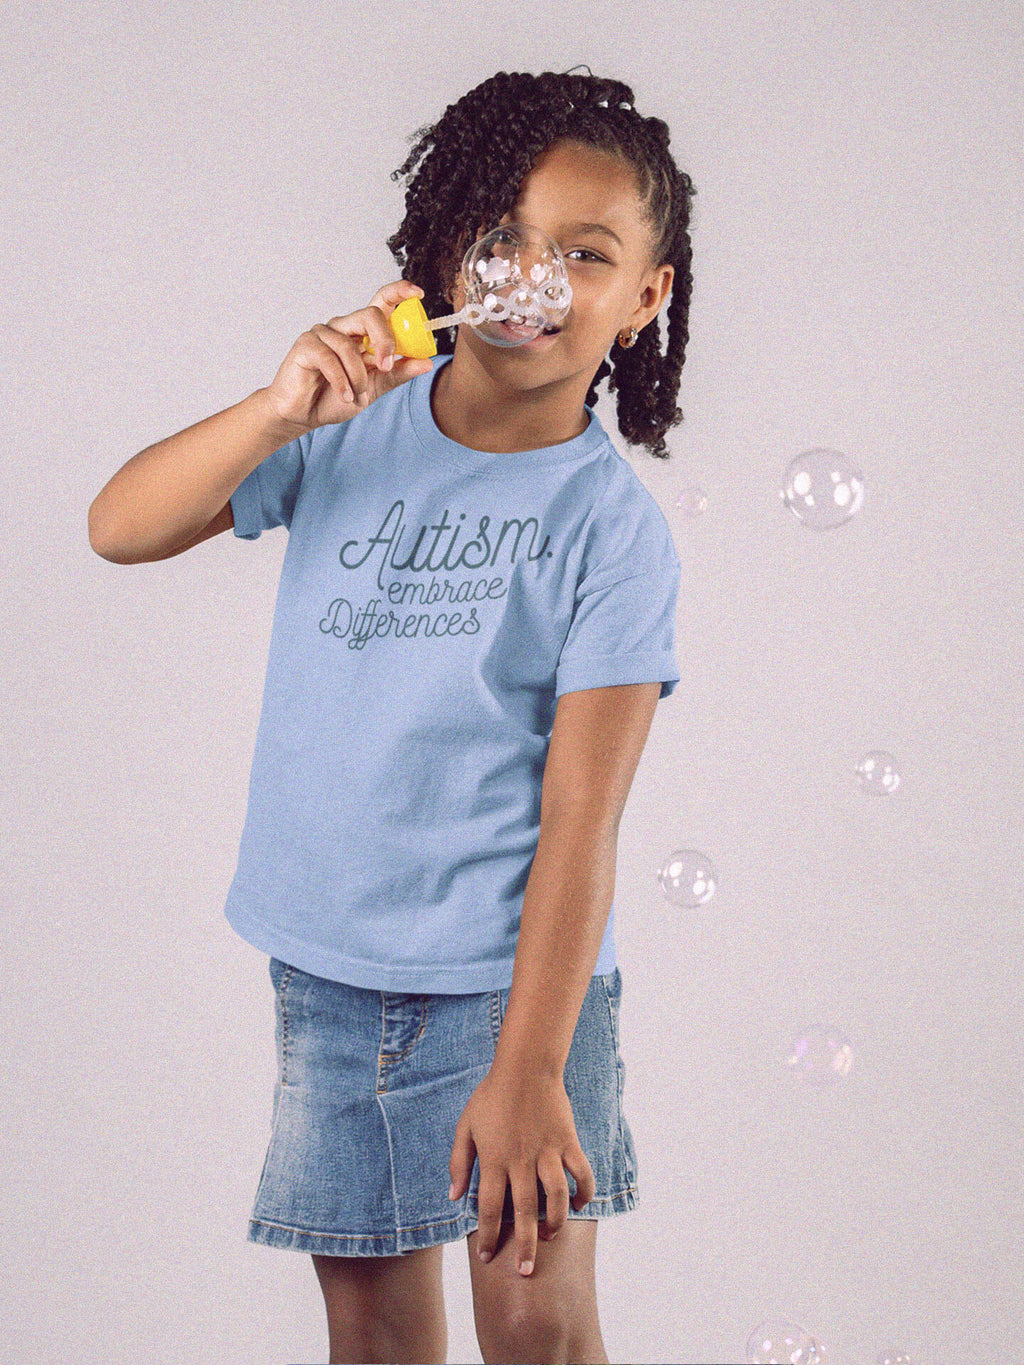 girl blowing bubbles wearing autism embrace differences t-shirt